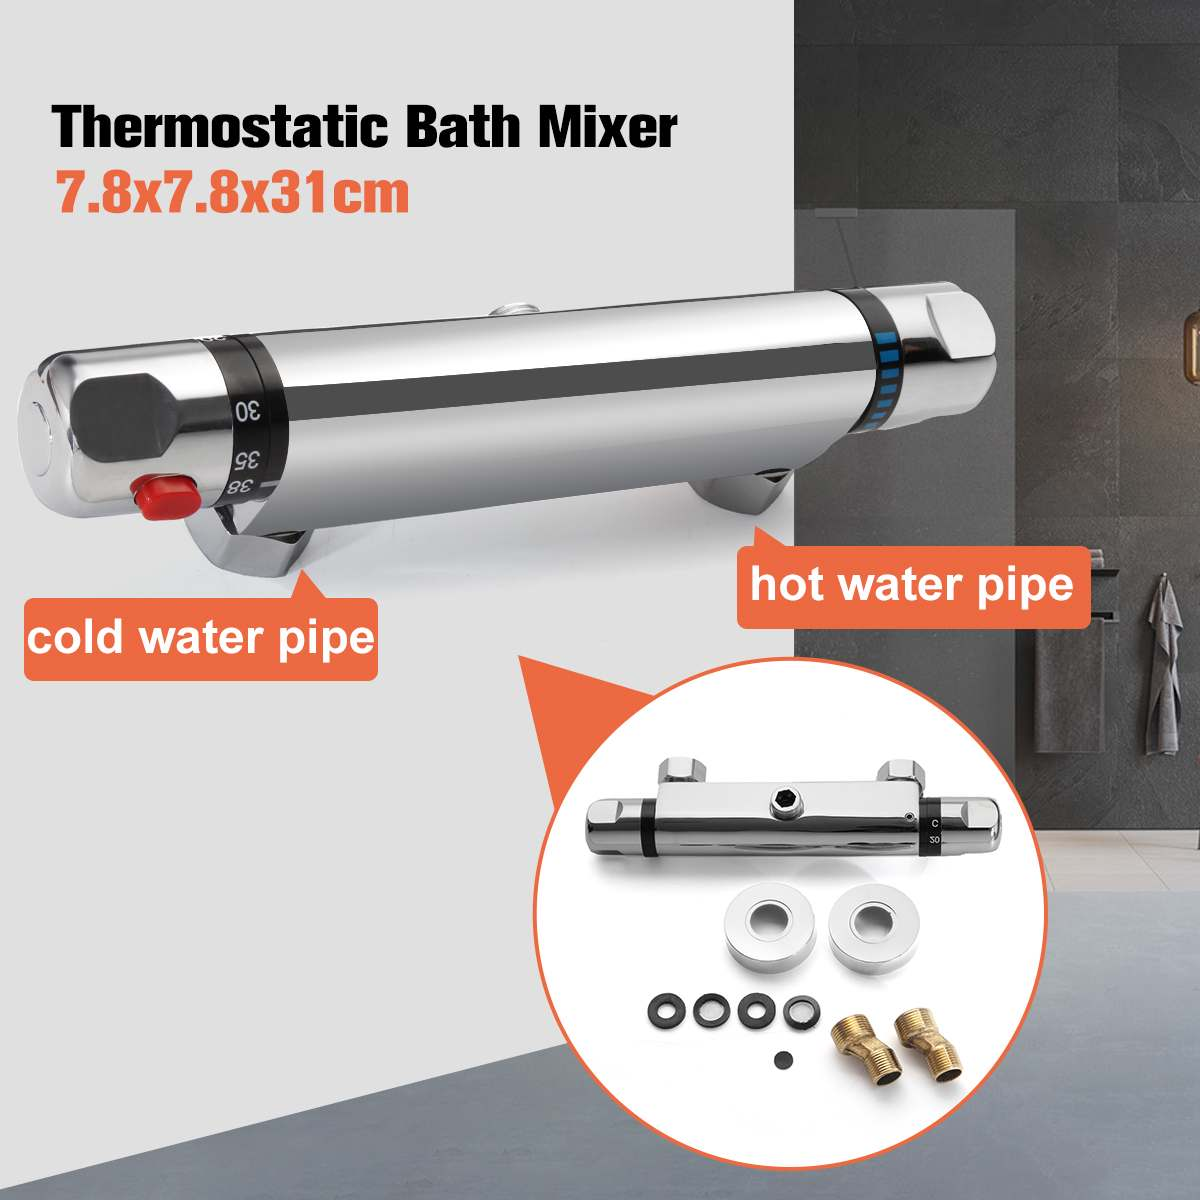 Xueqin Thermostatic Bath Mixer Shower Control Valve Bottom Faucet Bathroom Wall Mounted Hot And Cold Brass Mixer Bathtub TapXueqin Thermostatic Bath Mixer Shower Control Valve Bottom Faucet Bathroom Wall Mounted Hot And Cold Brass Mixer Bathtub Tap